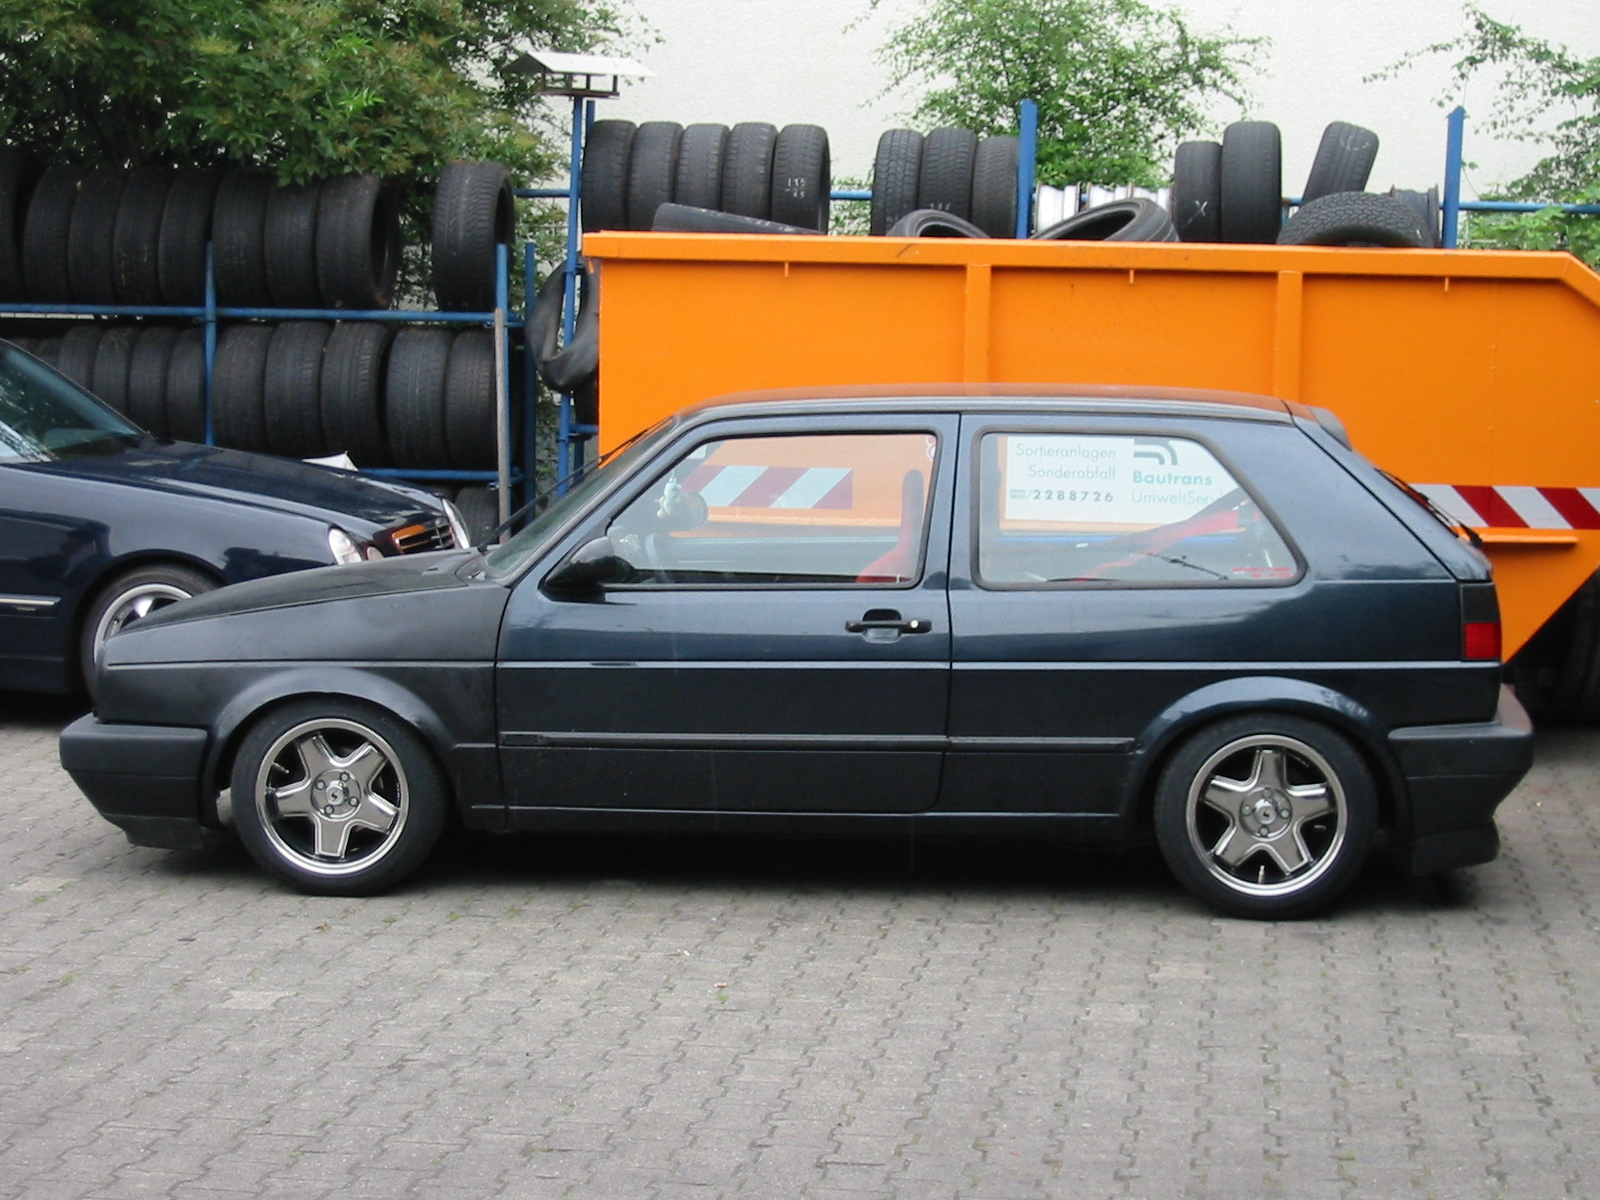 vw golf ii retro ml 1 tlg 15 zoll vw bildergalerie. Black Bedroom Furniture Sets. Home Design Ideas